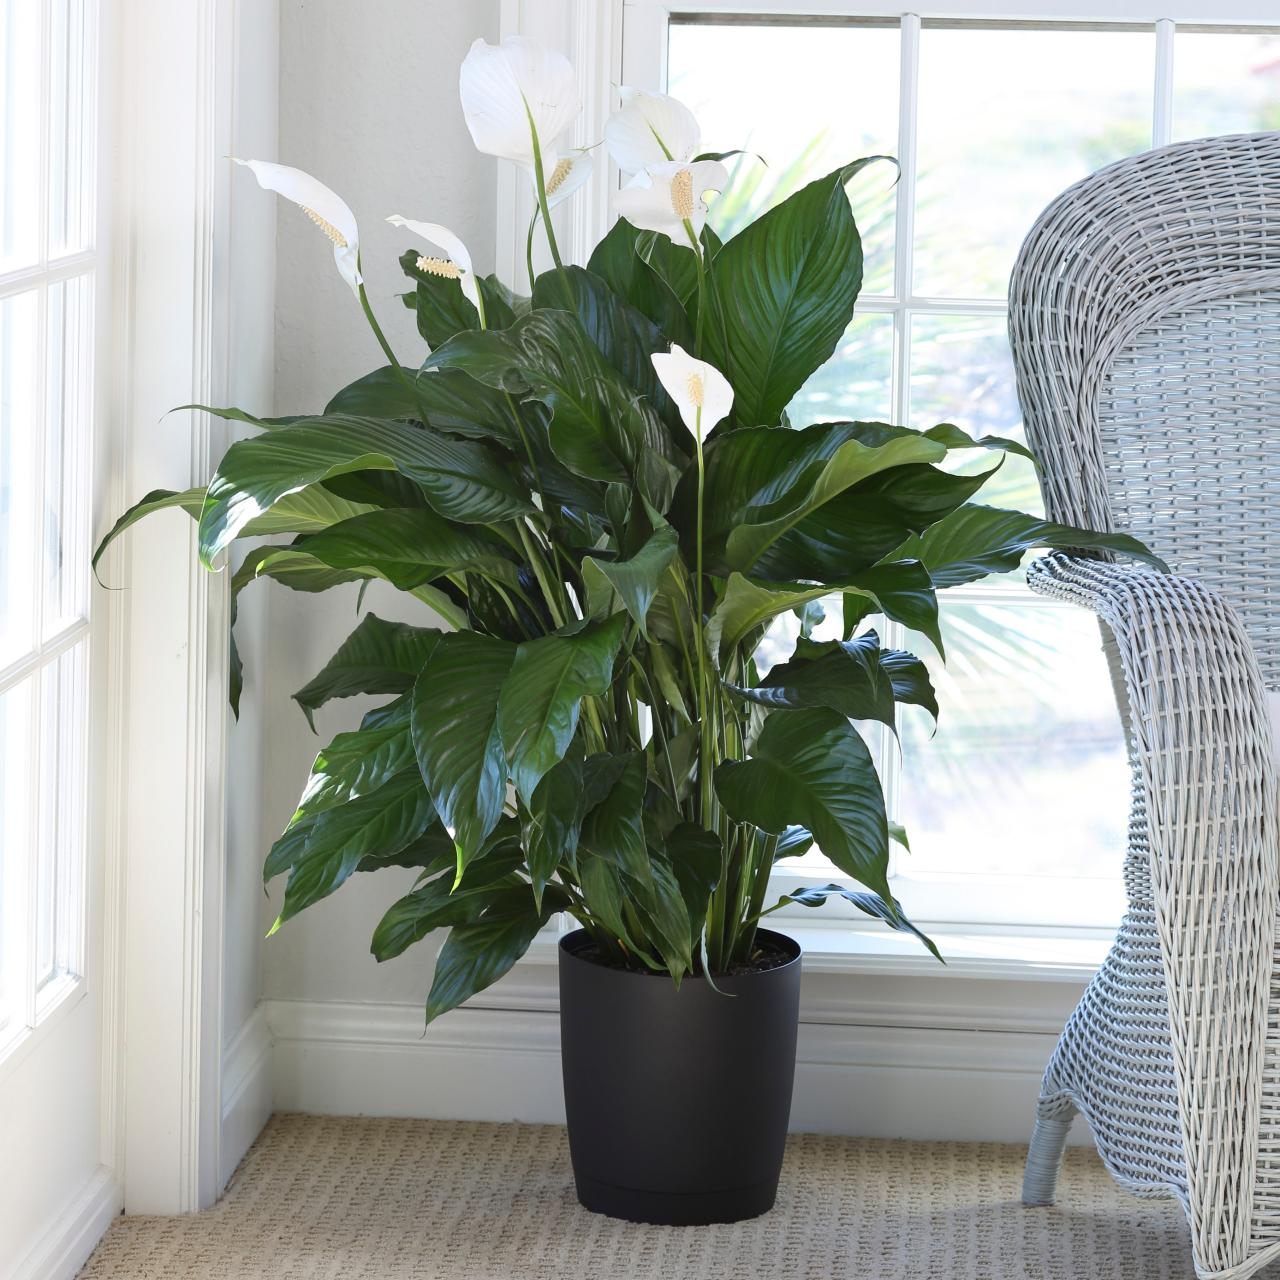 Grow And Care For Peace Lily Plants